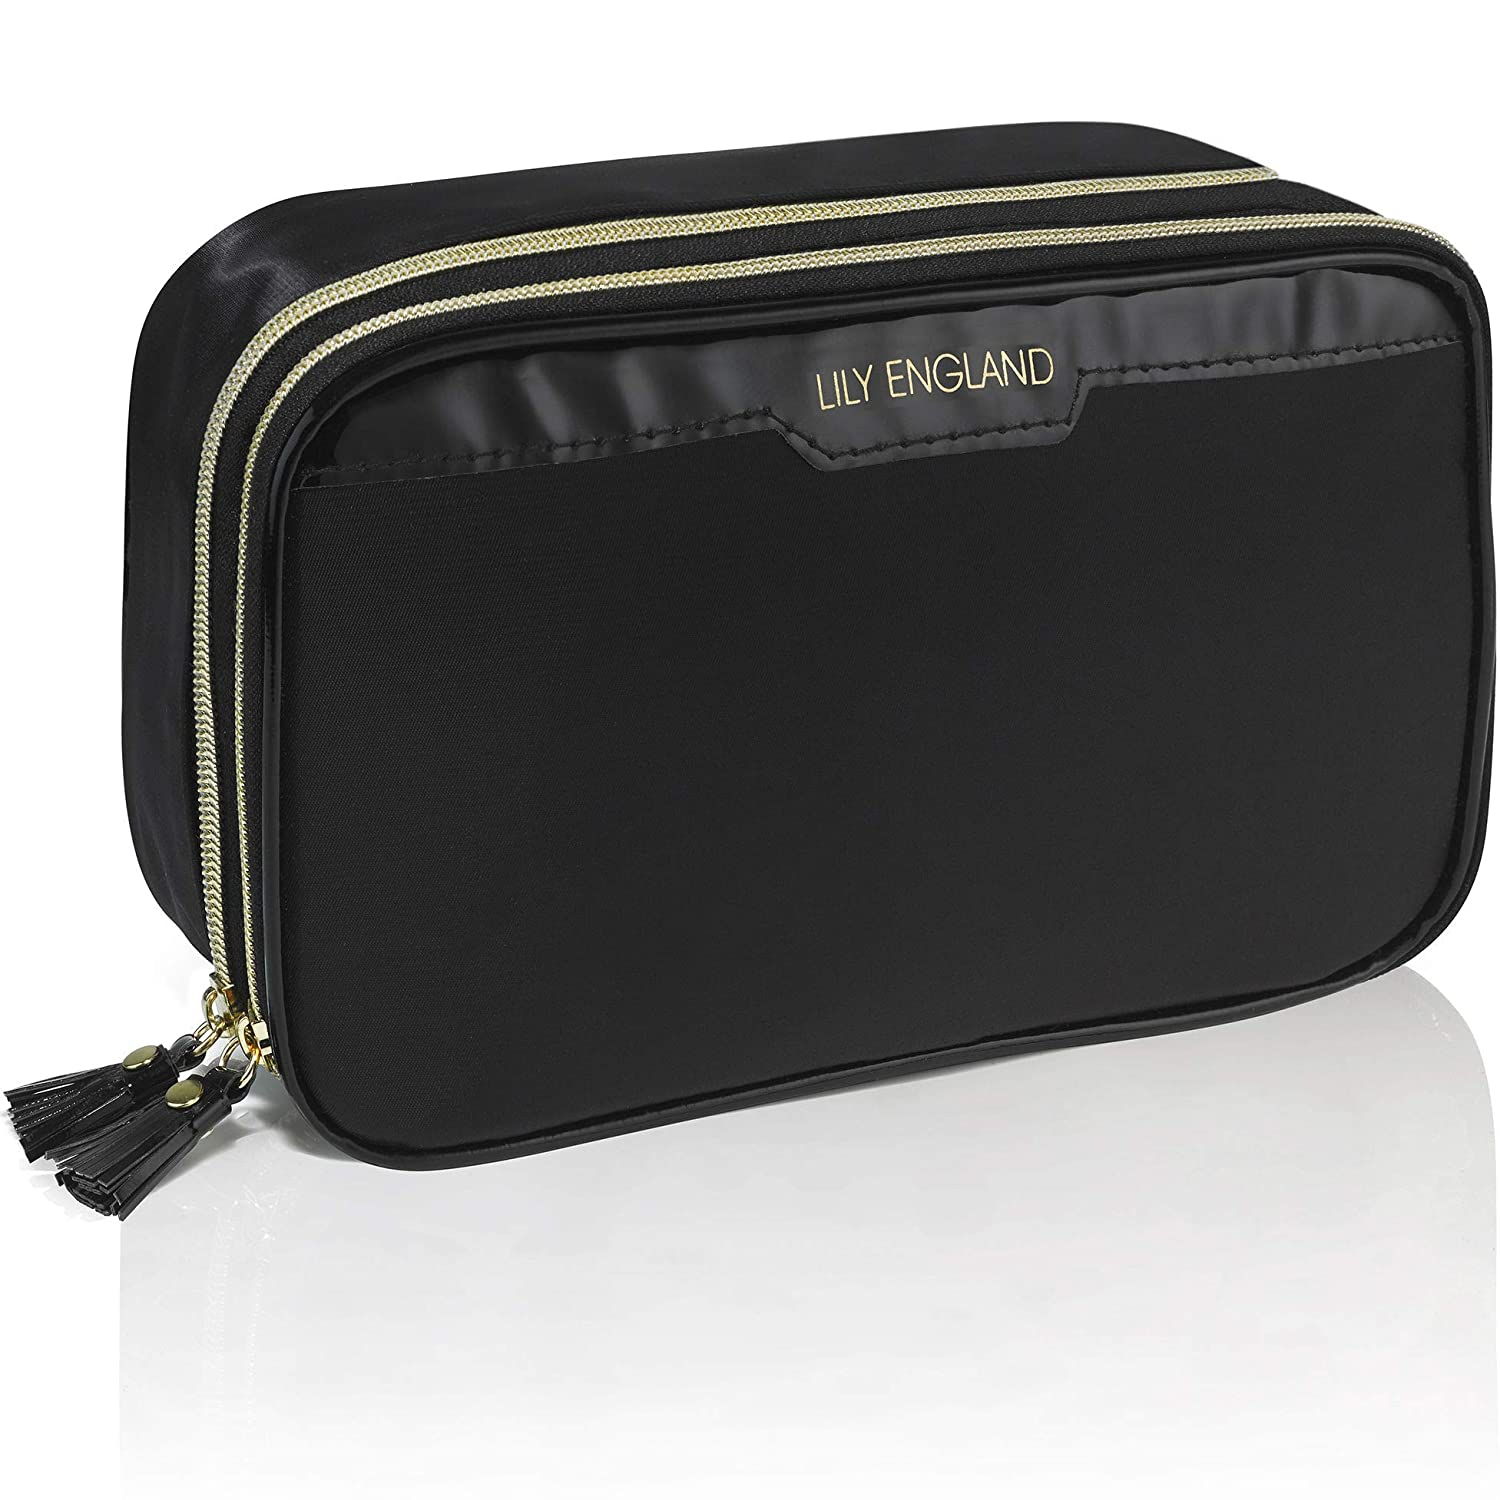 Lily England Makeup Bag Organizer, Make Up Storage Bags, Black Cosmetic Case